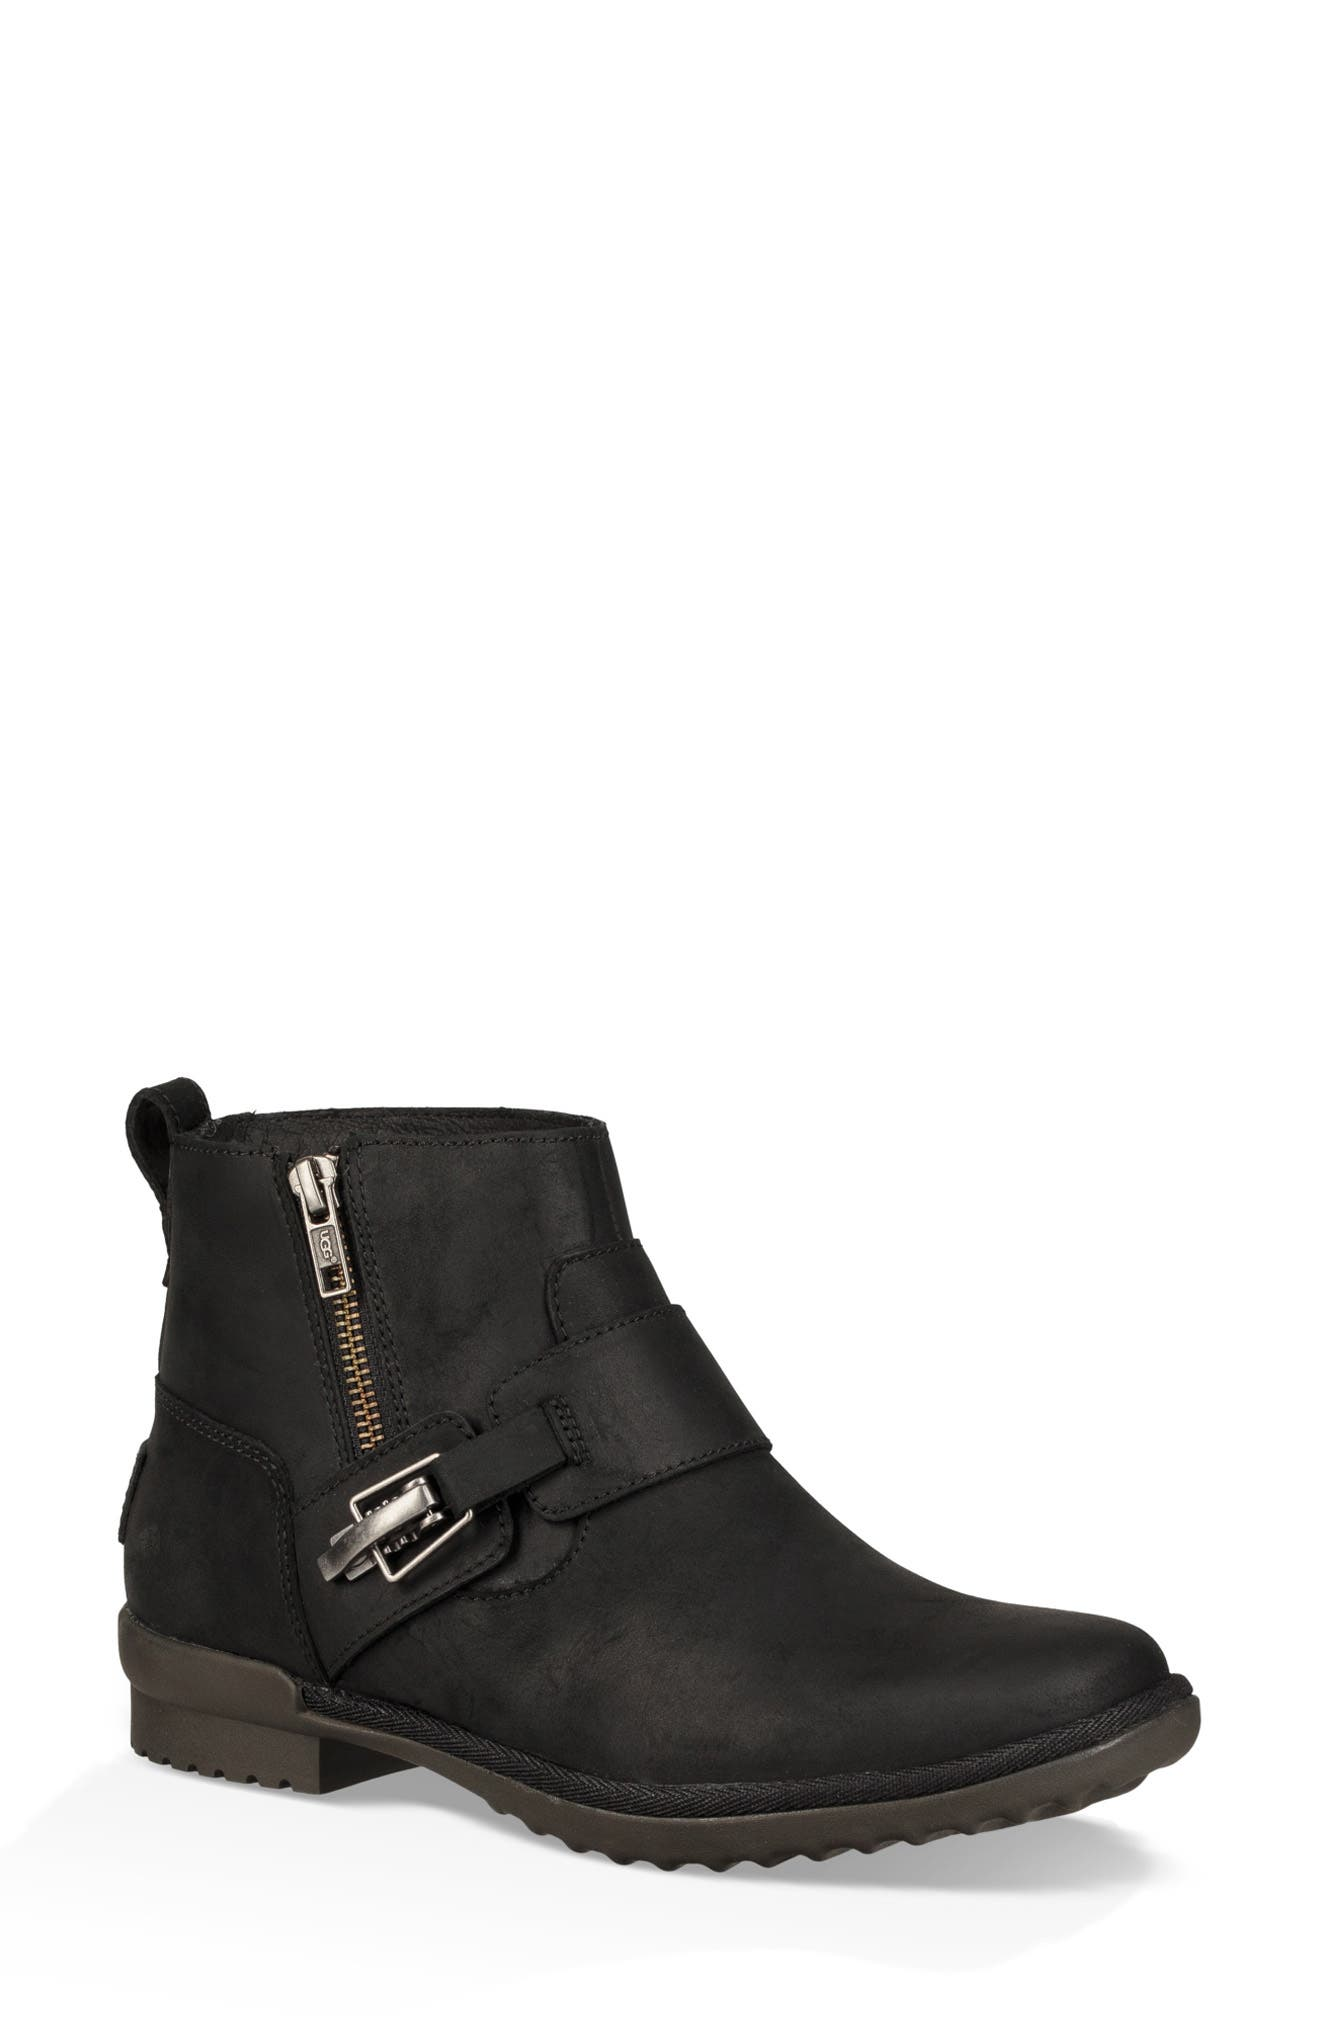 Cheyne Bootie,                             Main thumbnail 1, color,                             BLACK LEATHER